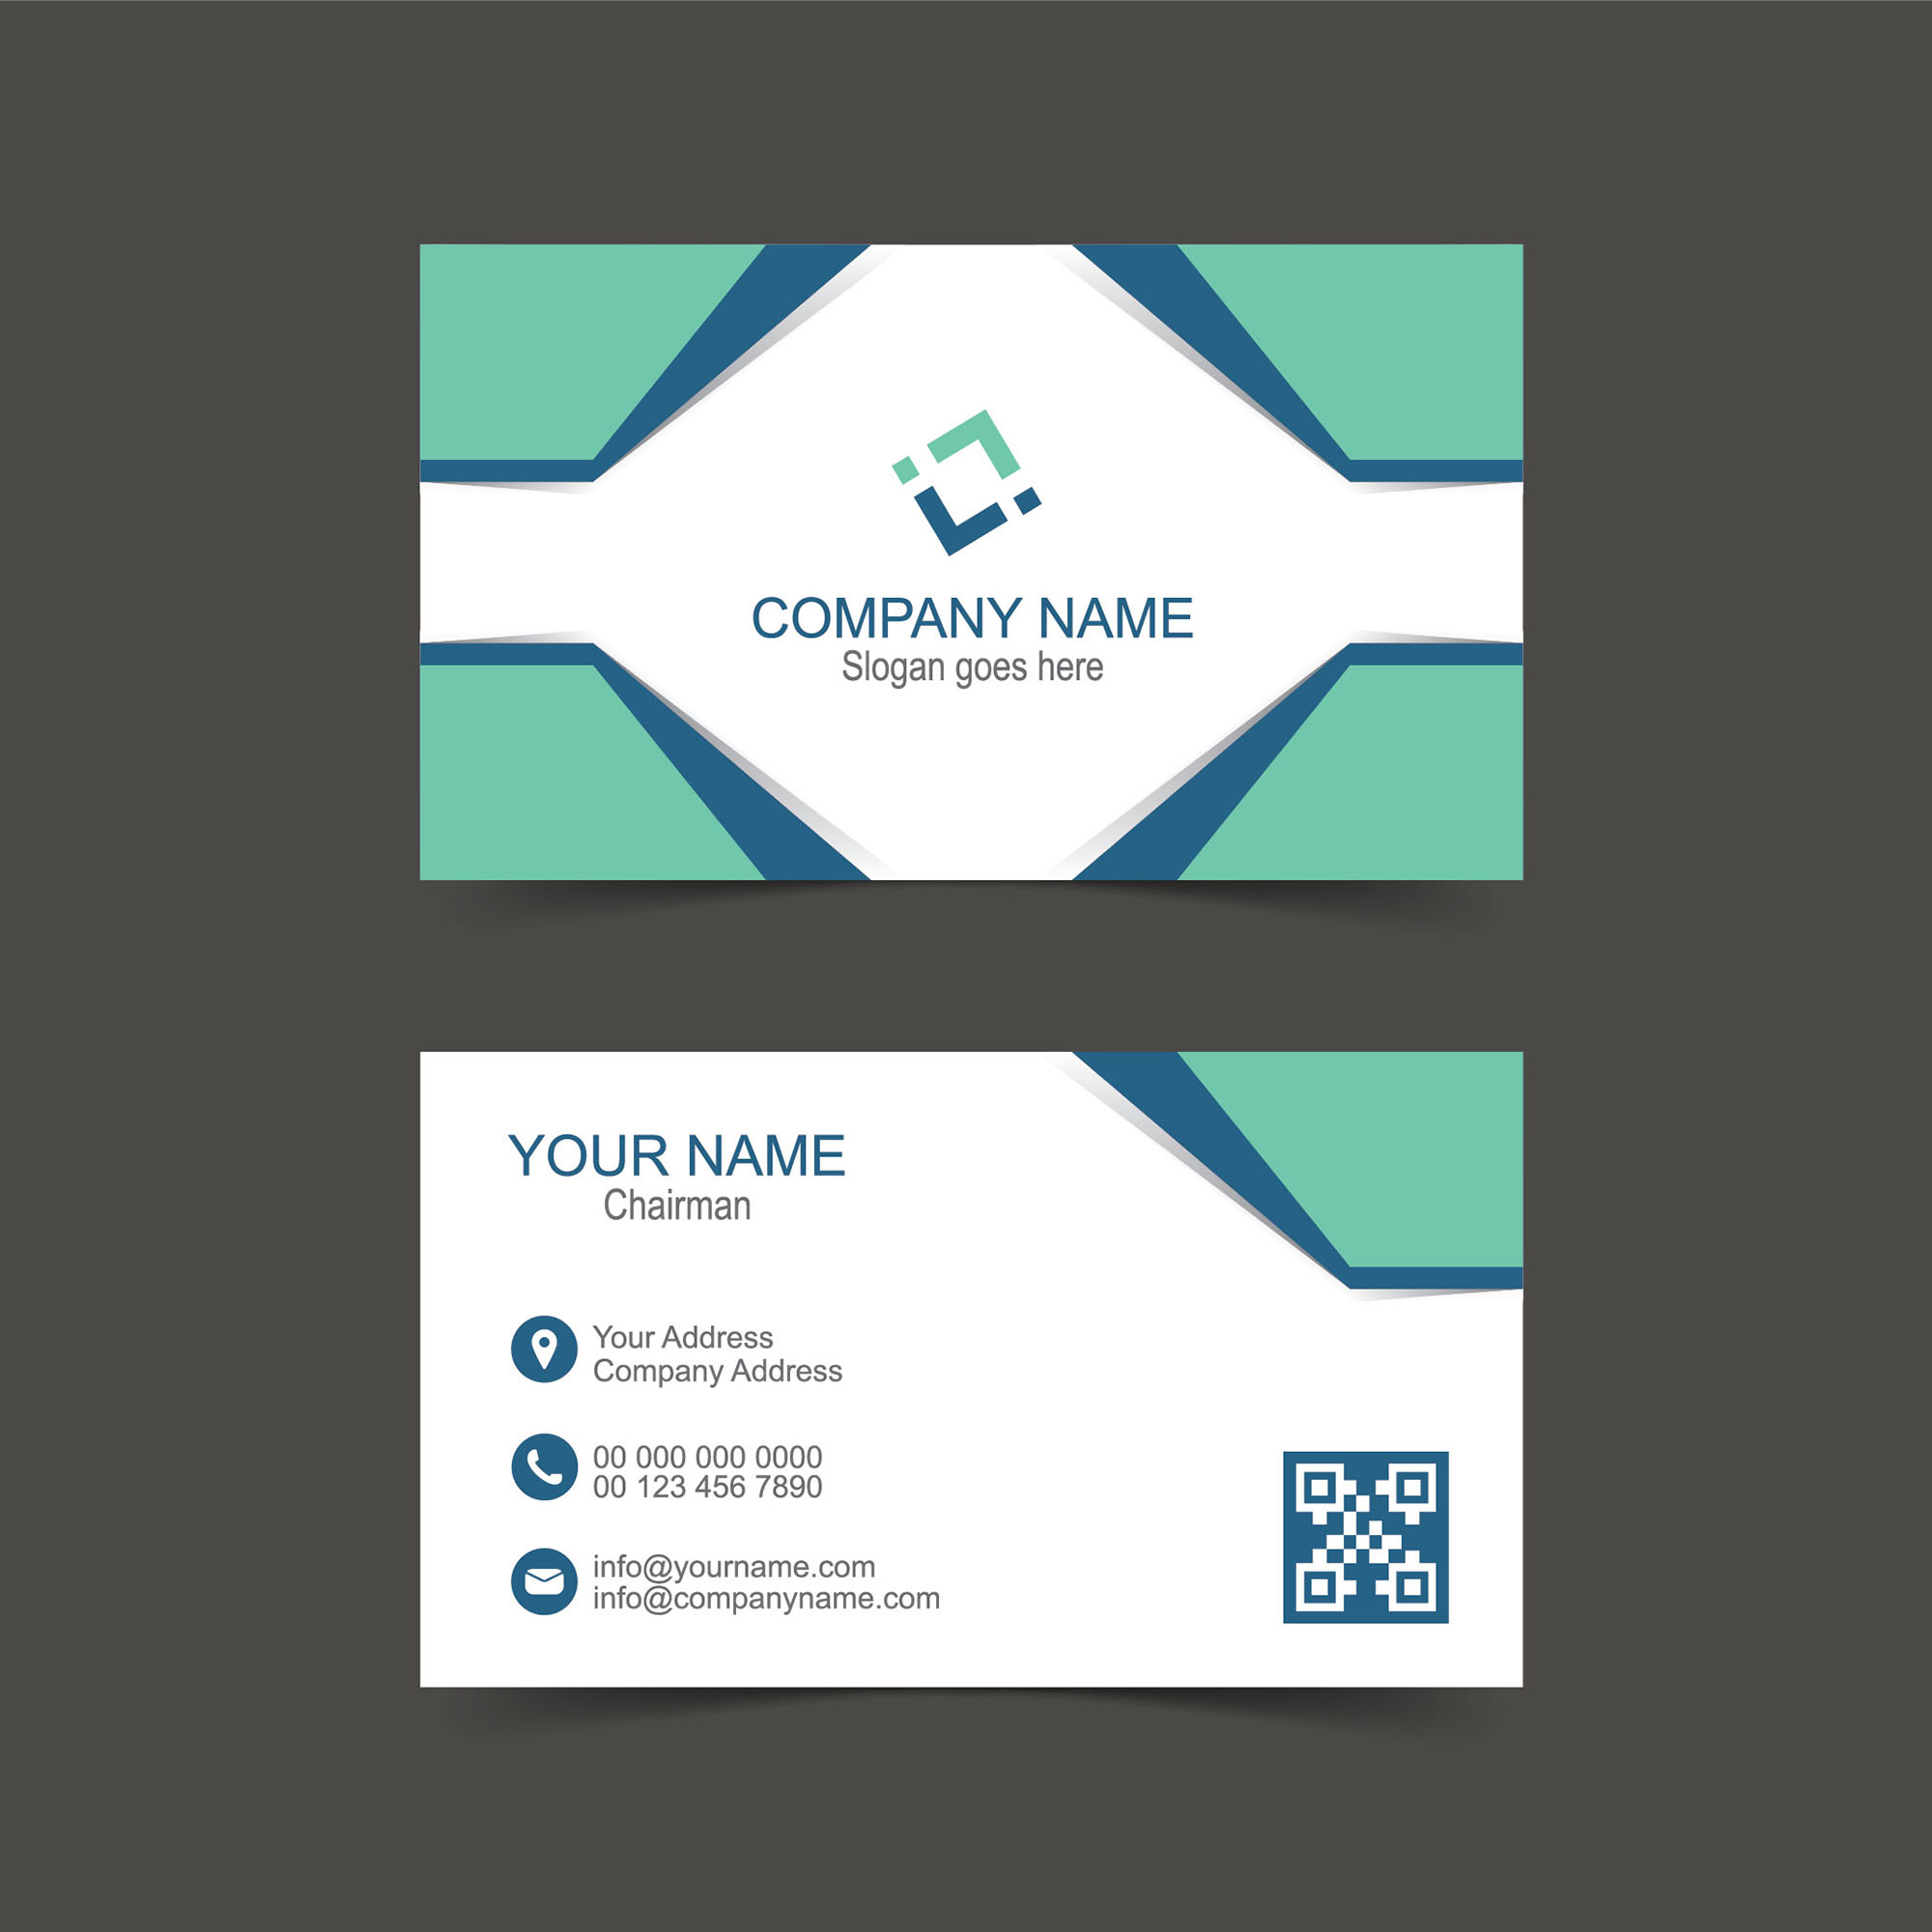 Creative Name Card Template Free Download Wisxicom - Free business card layout template